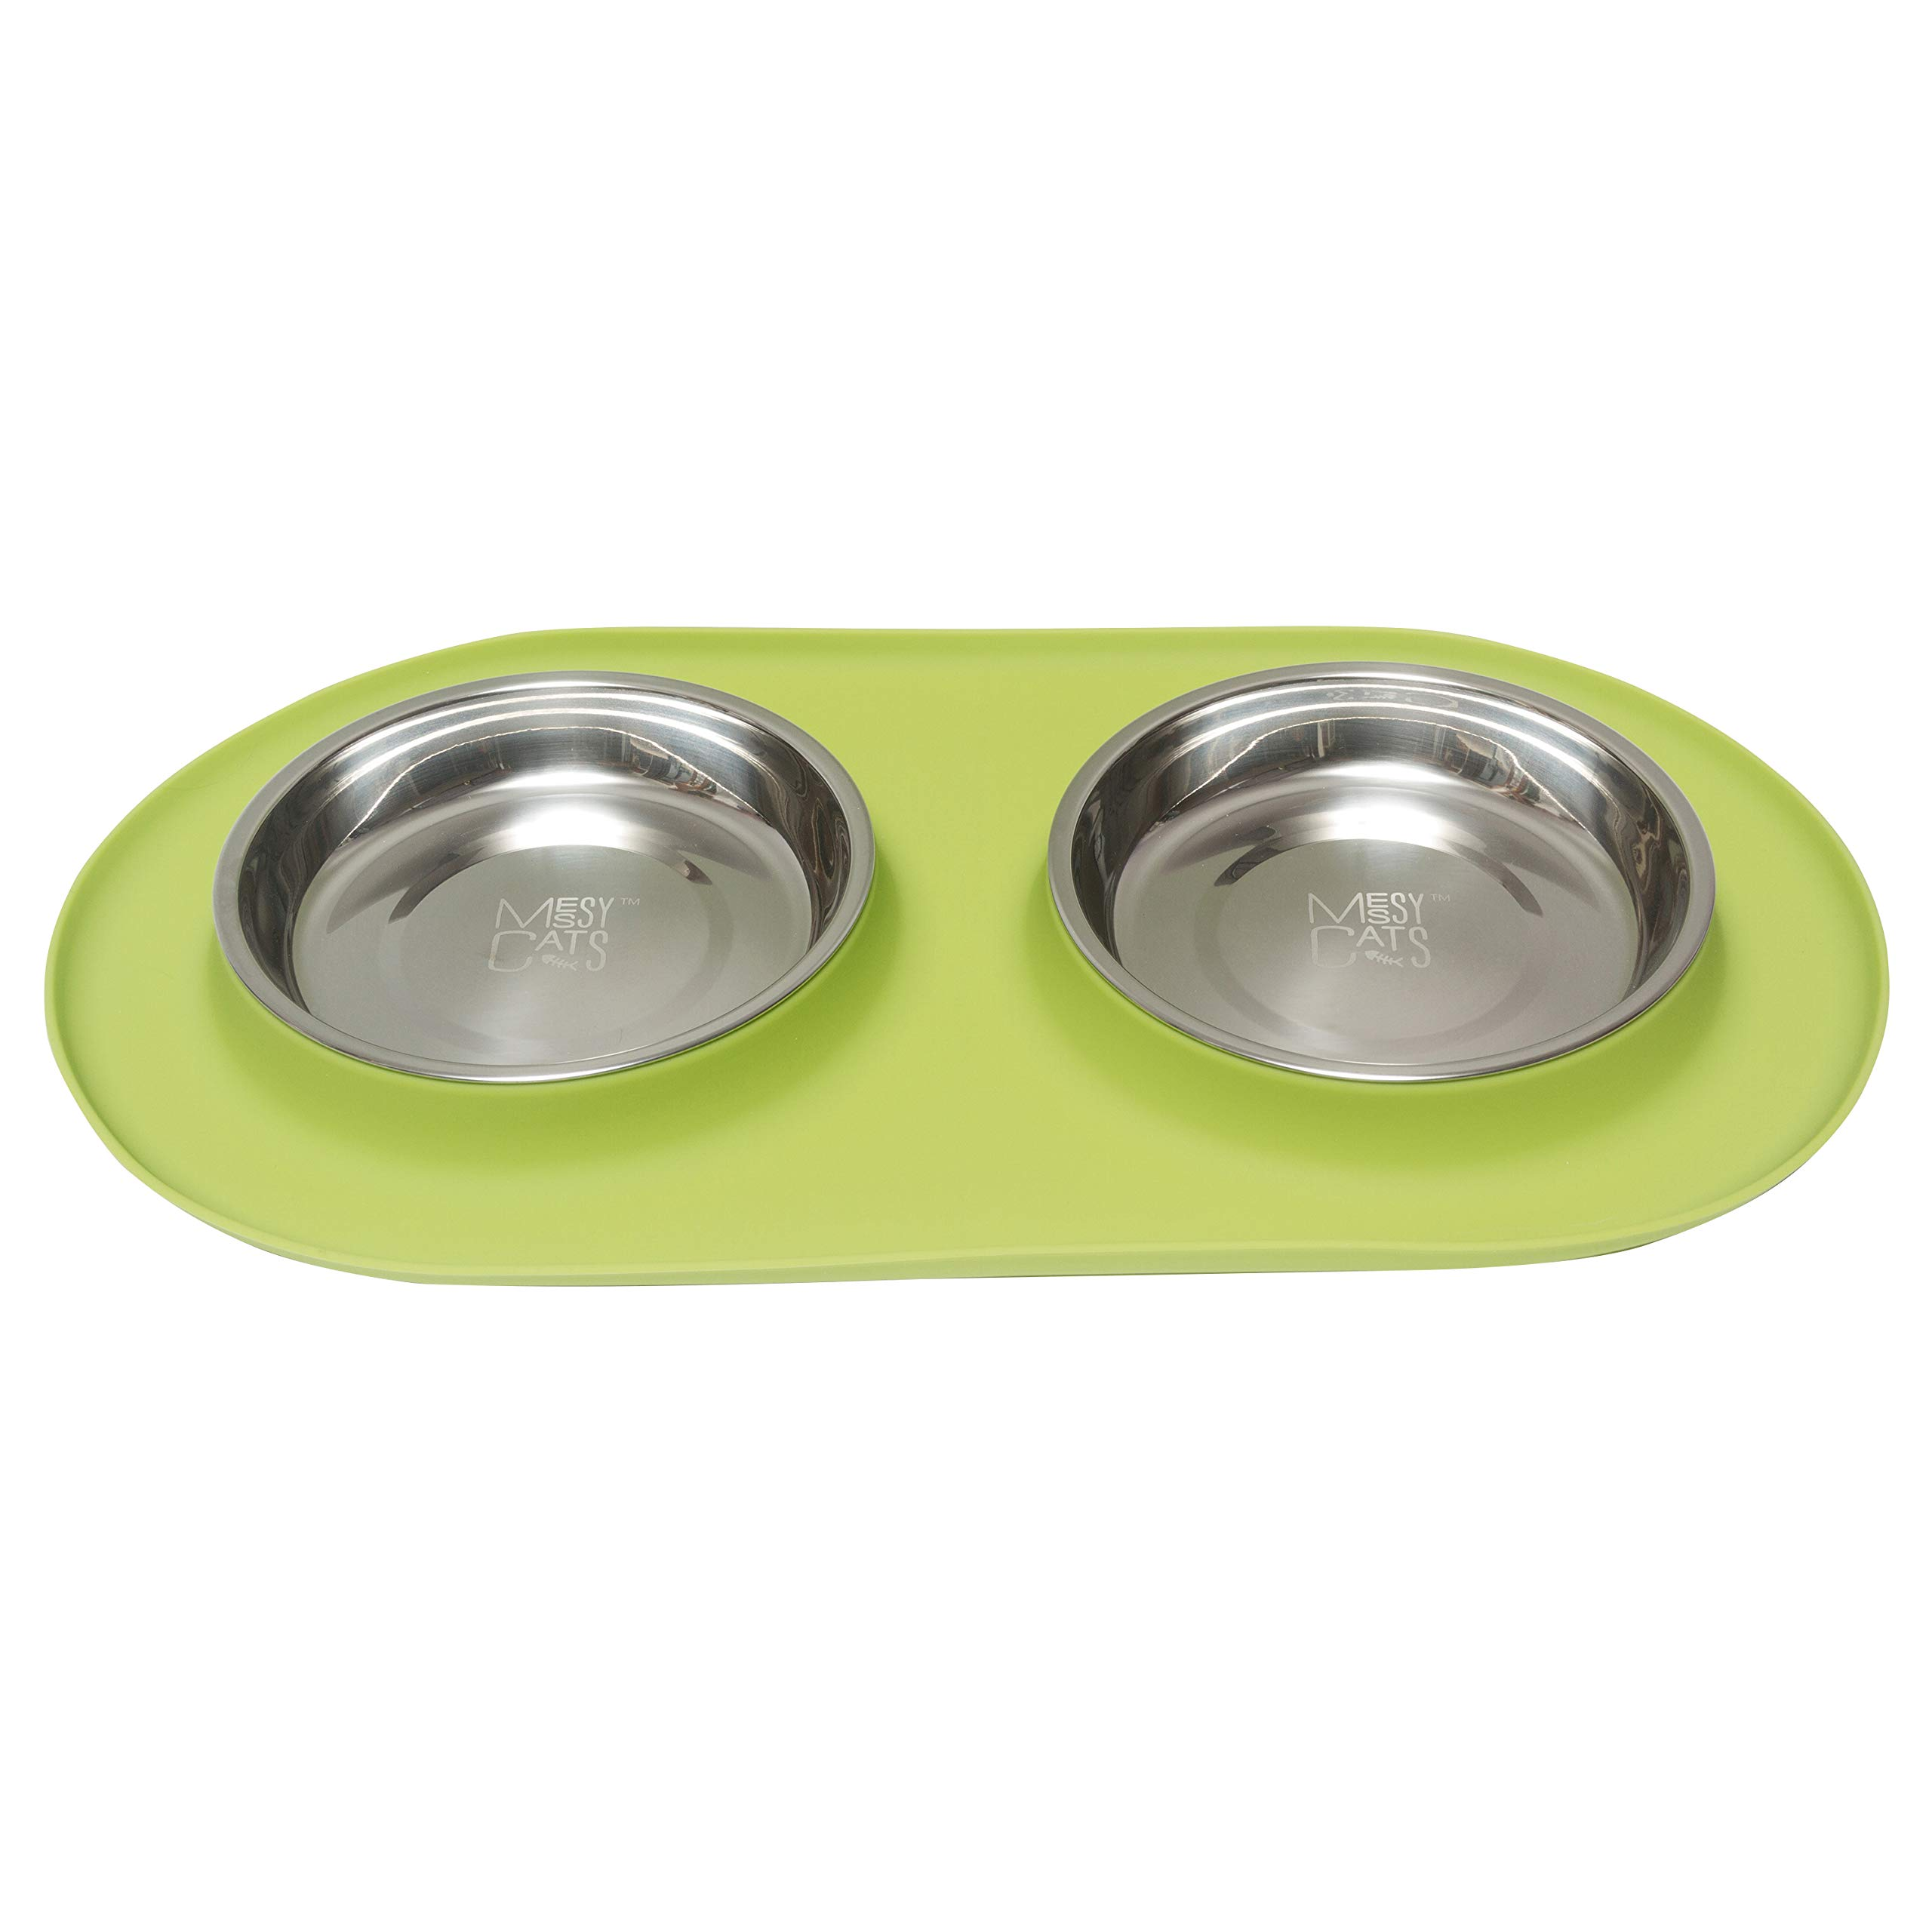 Messy Cats Stainless Steel Cat Double Feeder with Non-Slip Silicone Base Cat Bowl, Green, Medium